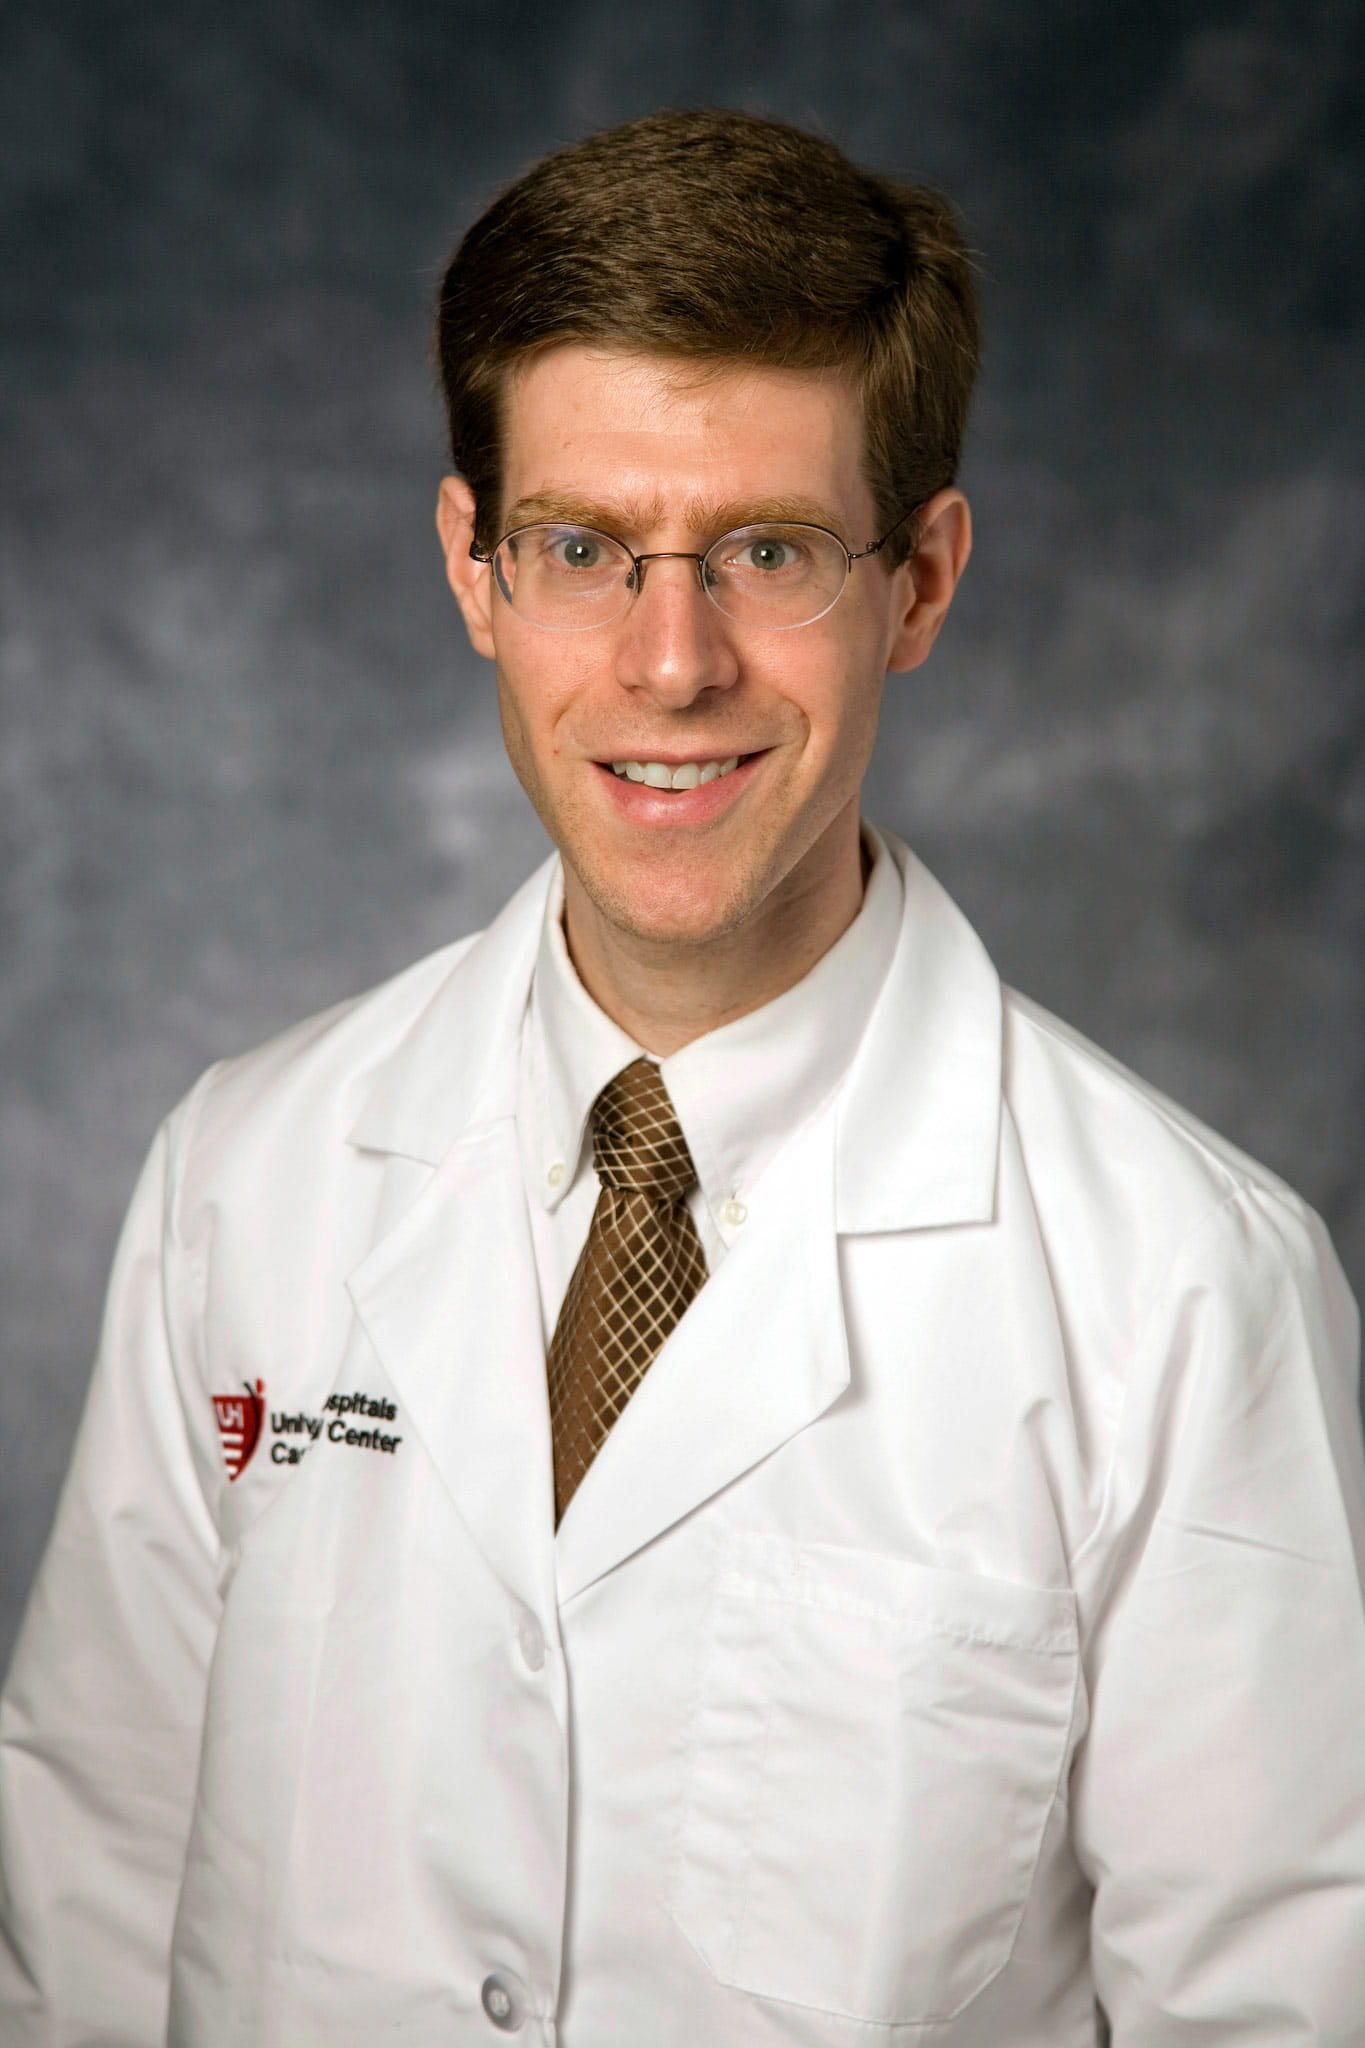 Photo of Steven Gunzler MD